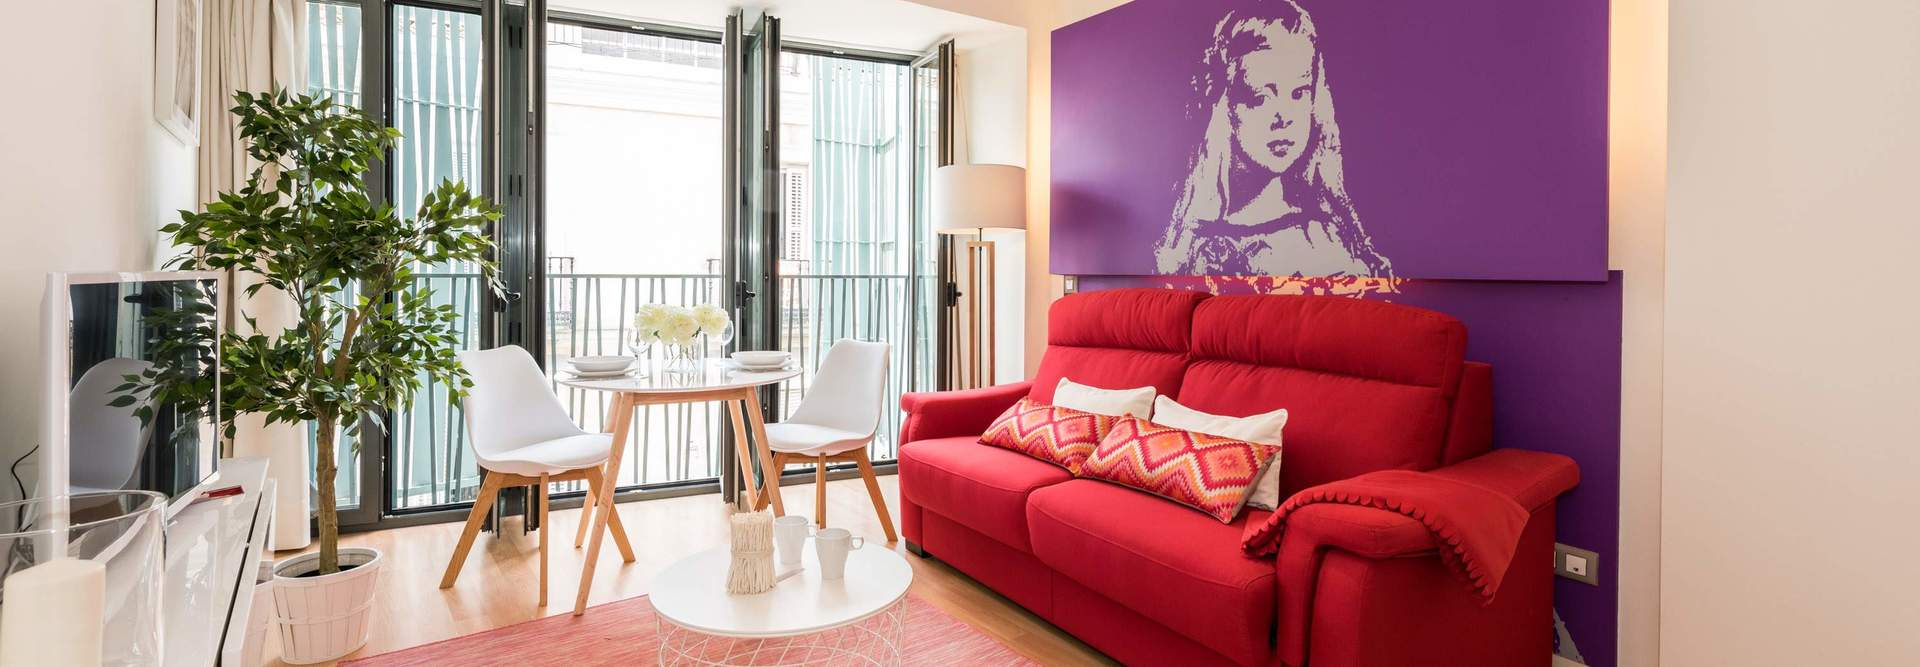 Home alquiler apartamento madrid centro mad4rent  18